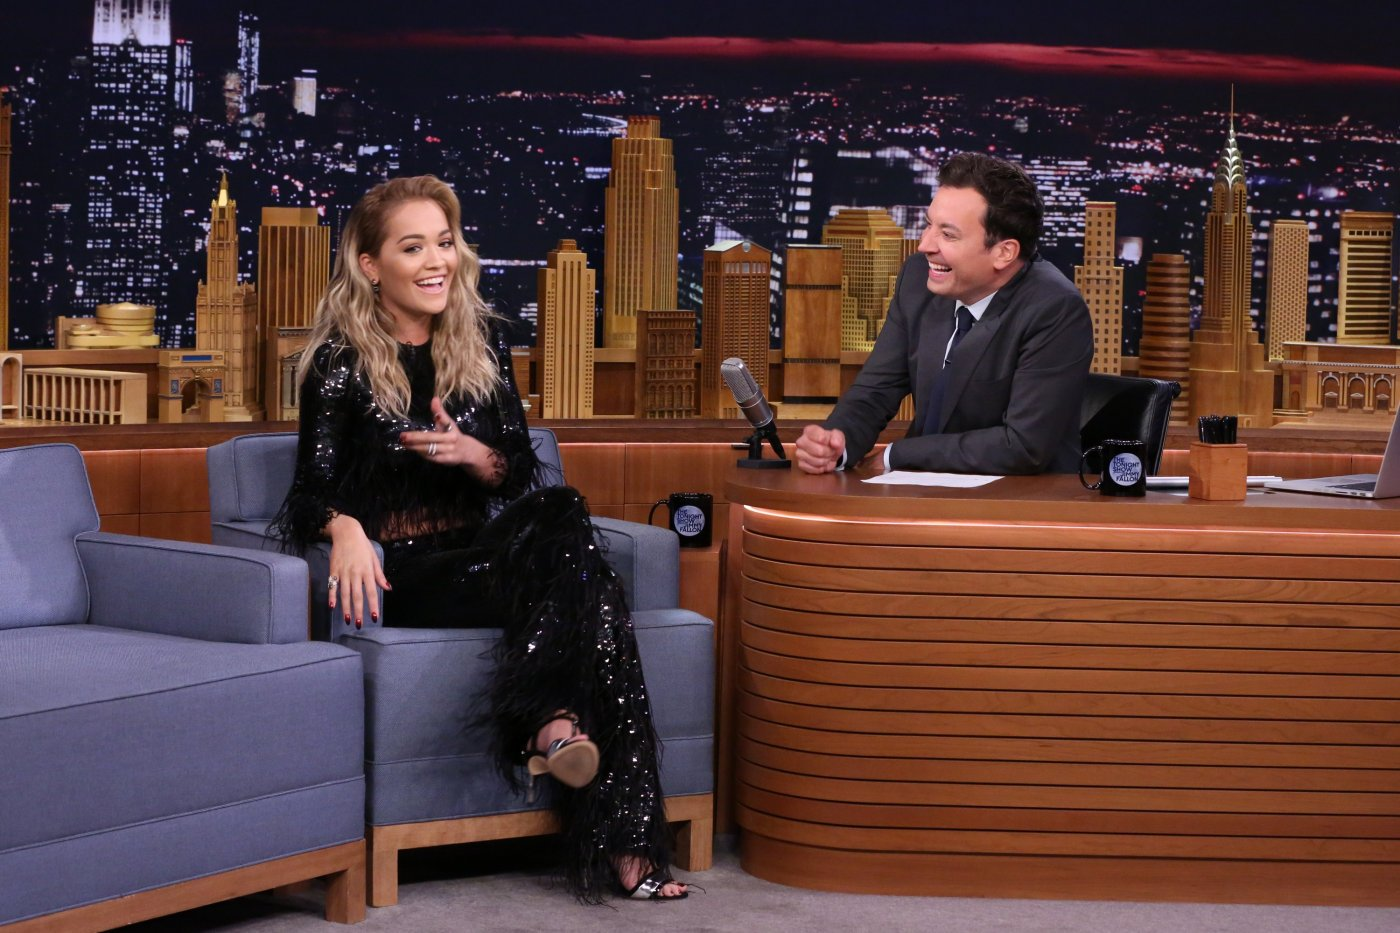 Don't forget to watch me tonight on @fallontonight it's Gonna be funny! As usual! @jimmyfallon thx for having me 🙌🏼💙 https://t.co/lRM1tHmyHl